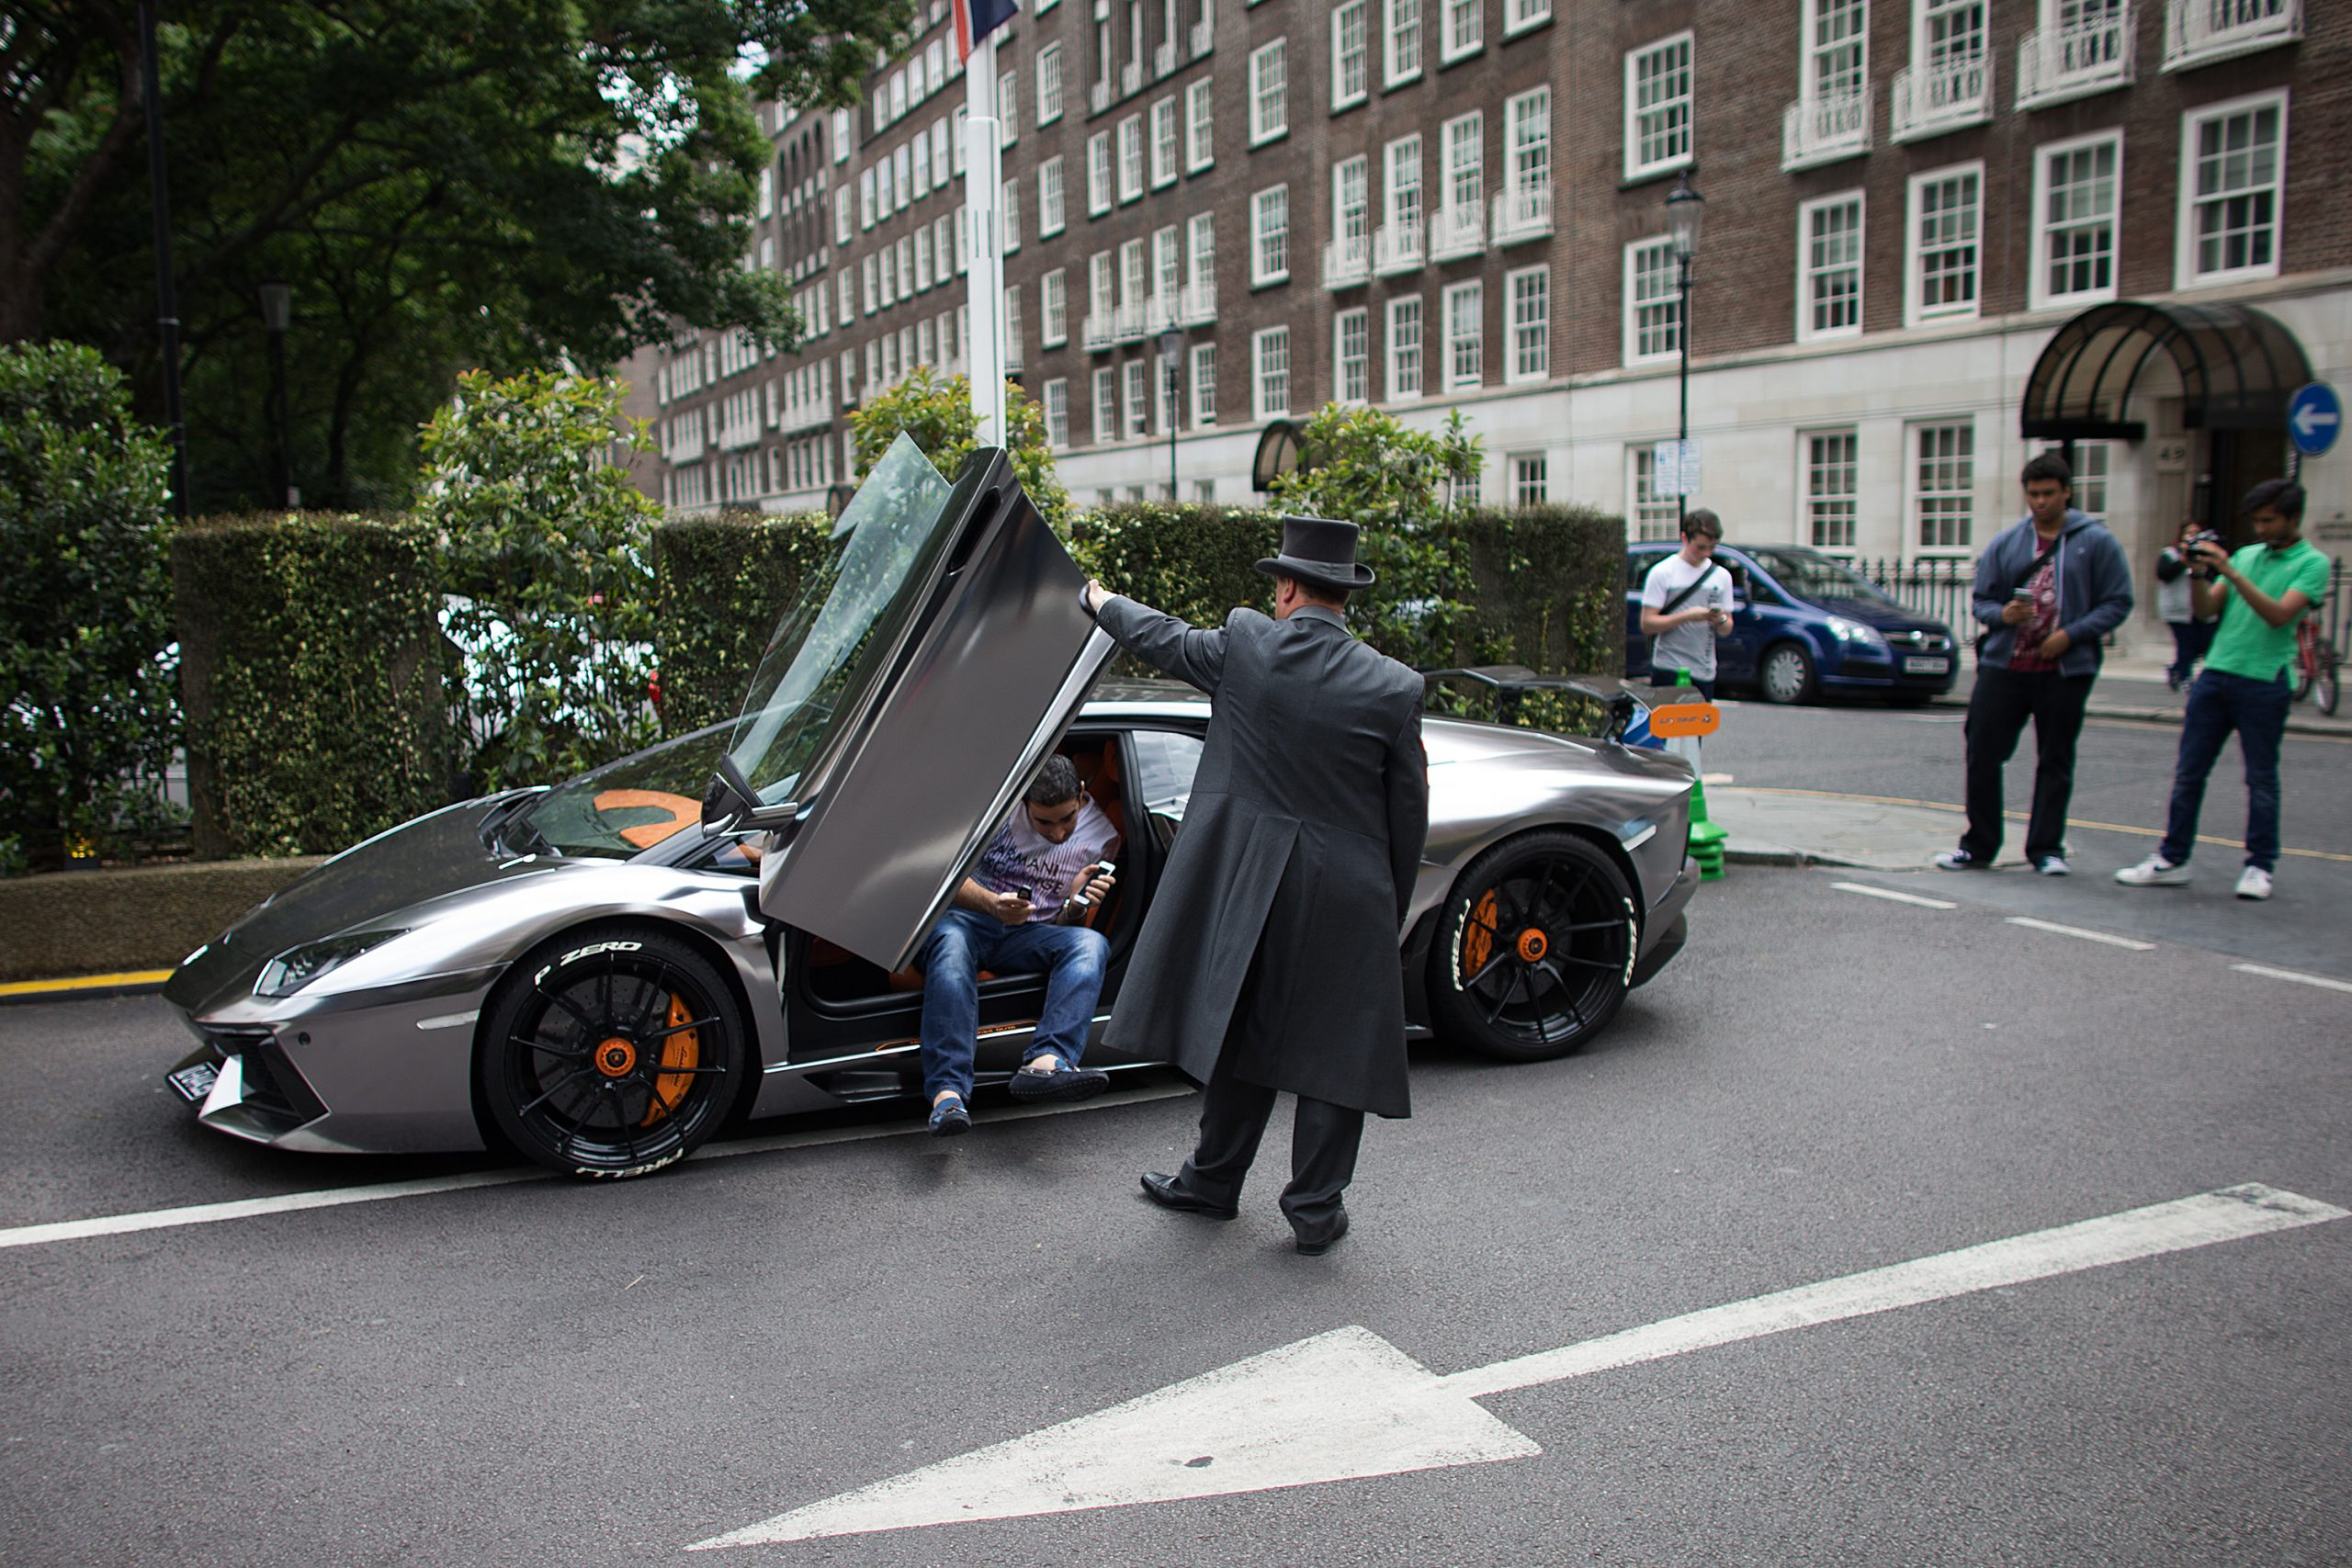 A valet helps an owner out of his silver Lamborghini supercar